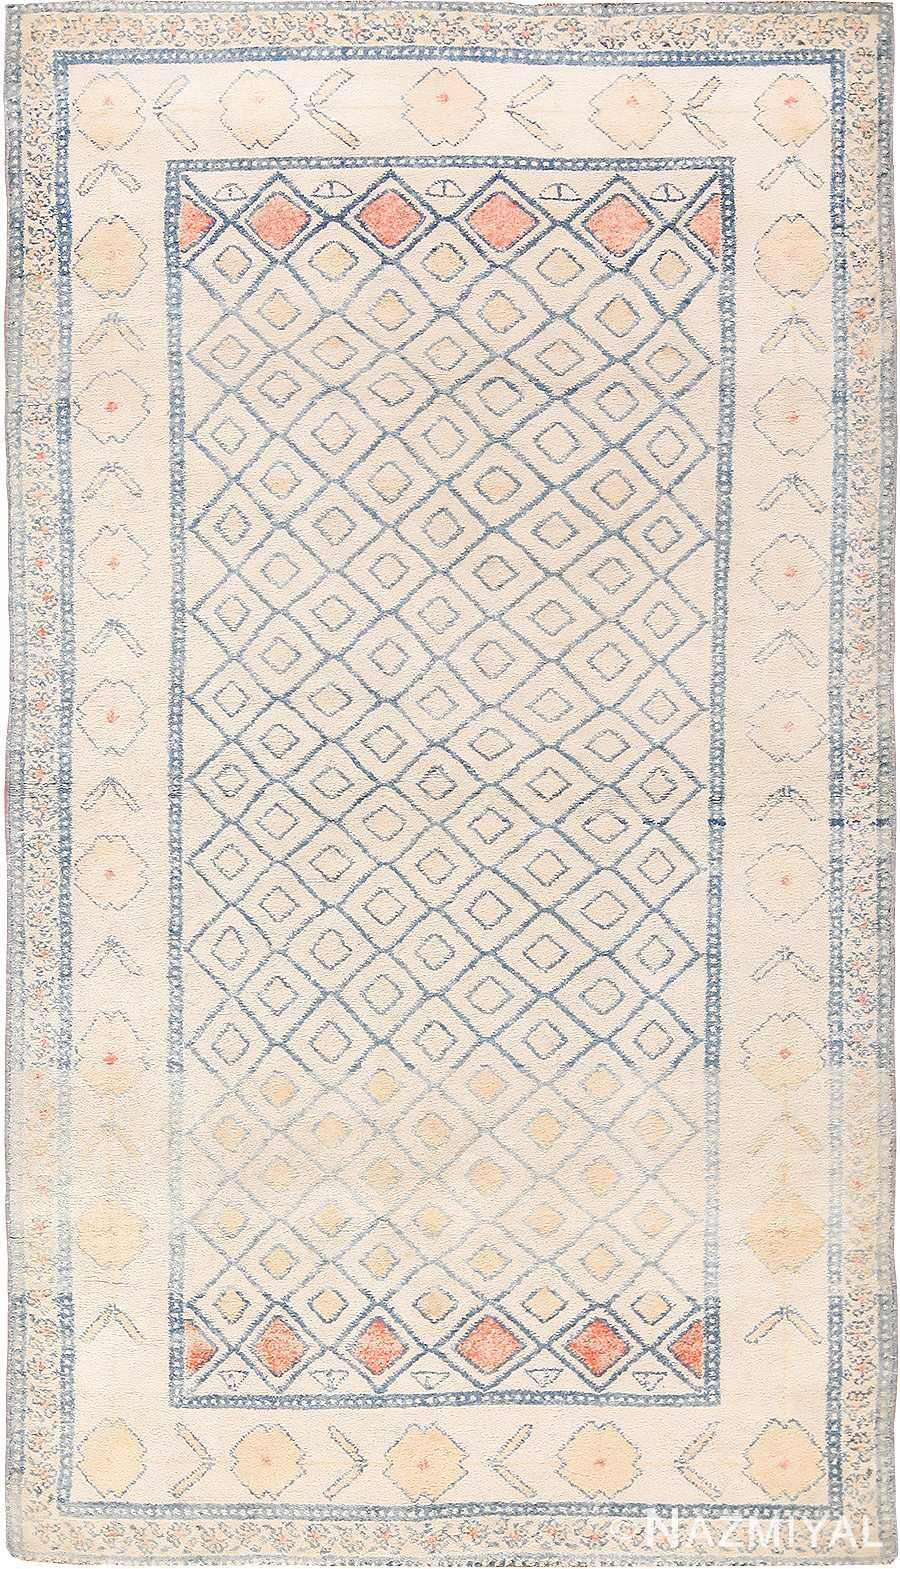 Small Decorative Antique Indian Cotton Agra Rug 49148 Nazmiyal